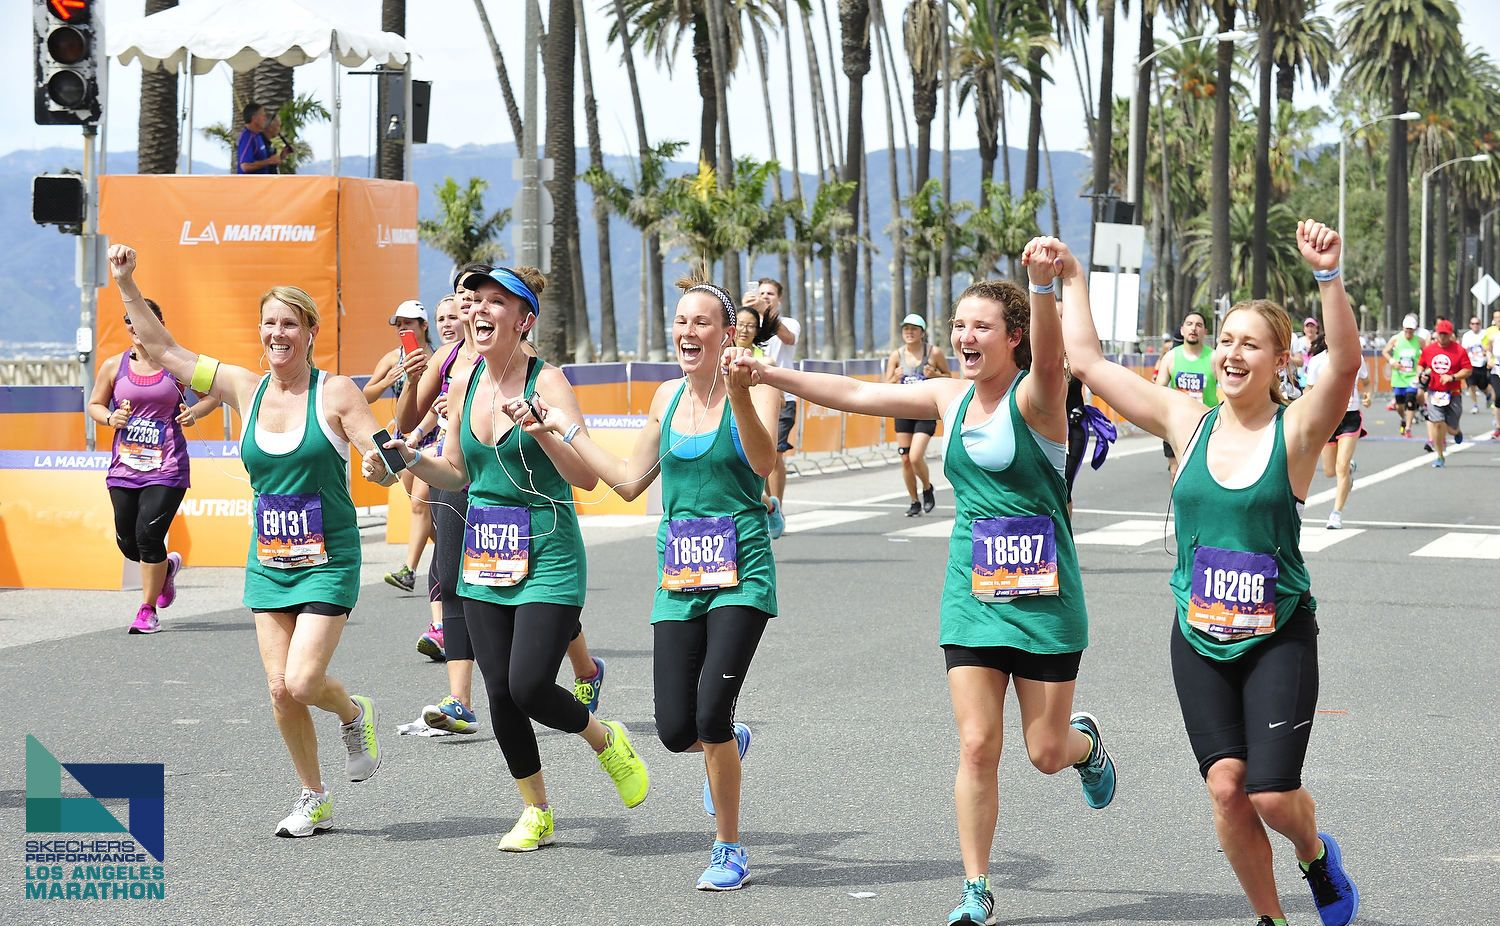 Celebrate Gal-entines day by running the Skechers Performance Los Angeles Marathon on 1/14/2015!